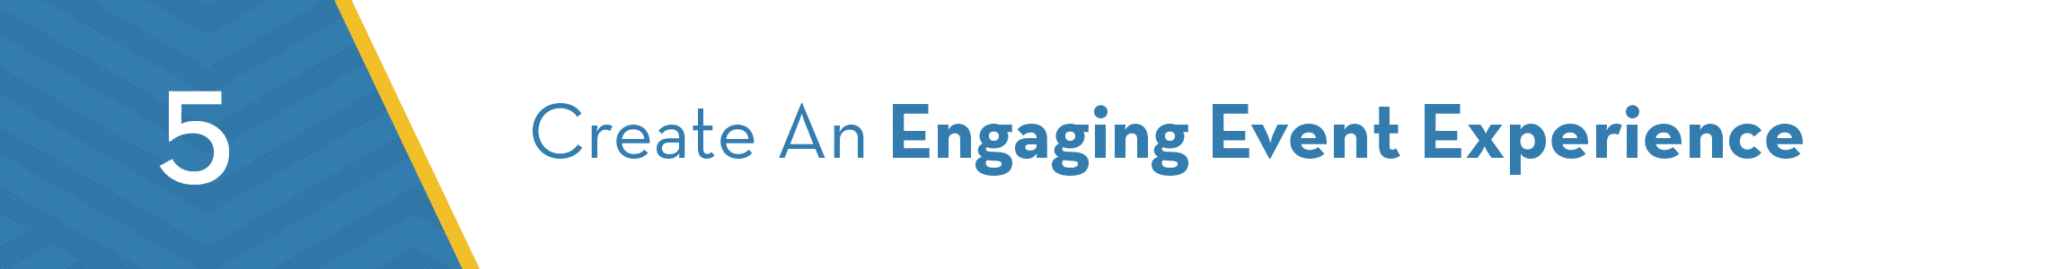 5-create-an-engaging-event-experience